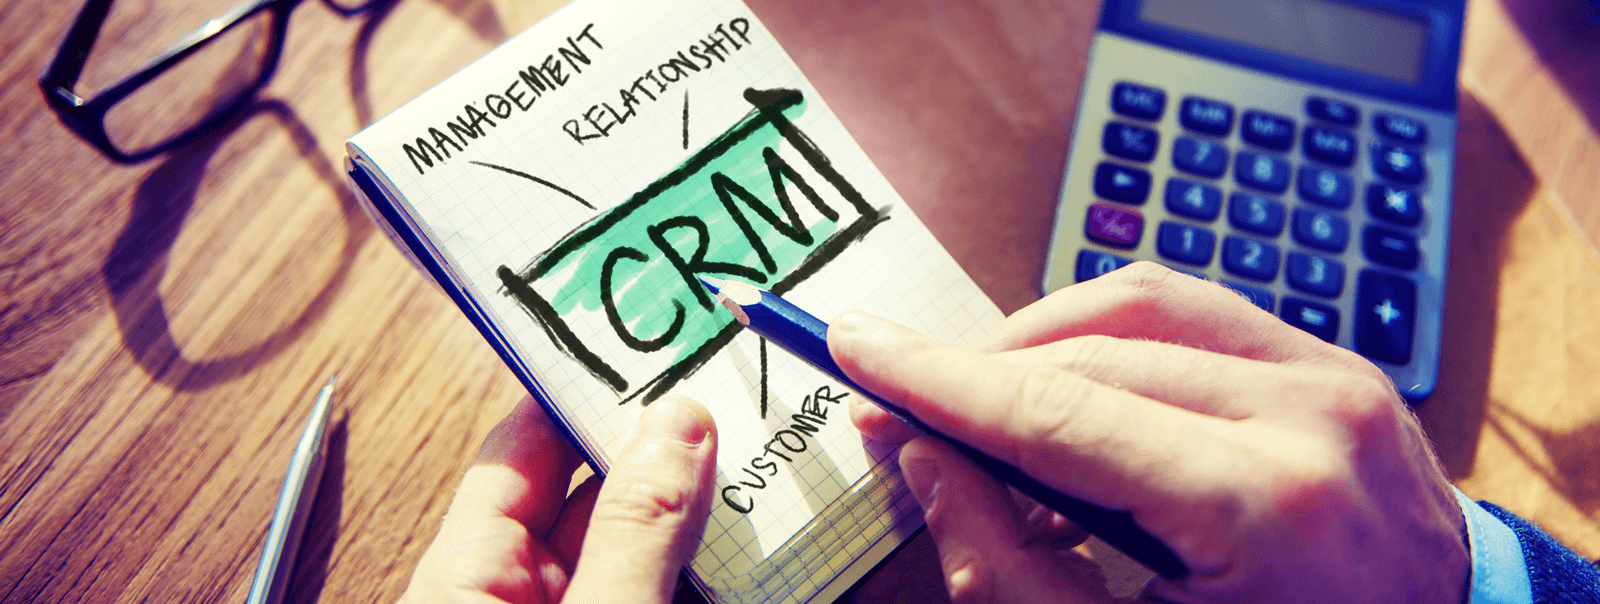 Why develop CRM?